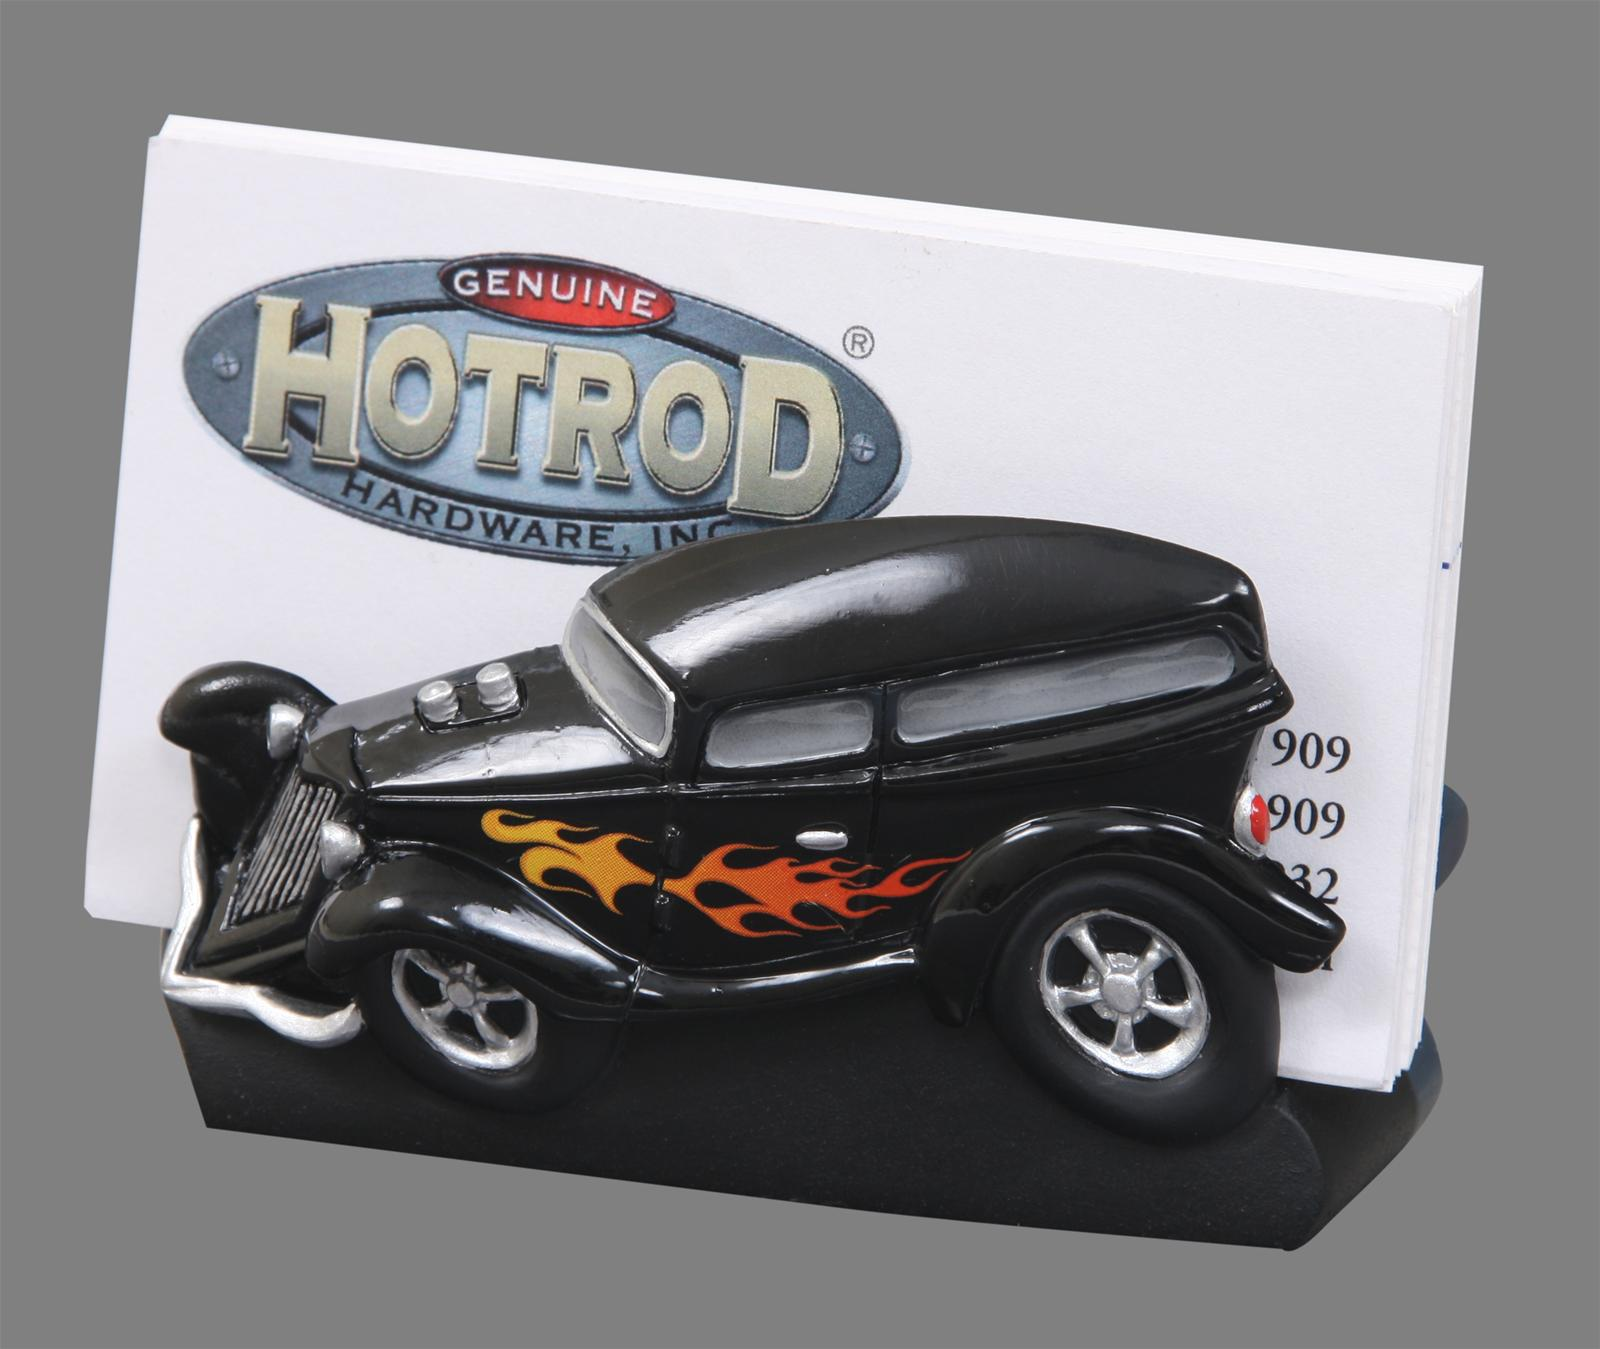 Genuine hotrod hardware monster rides business card holders mr4009 genuine hotrod hardware monster rides business card holders mr4009 free shipping on orders over 99 at summit racing colourmoves